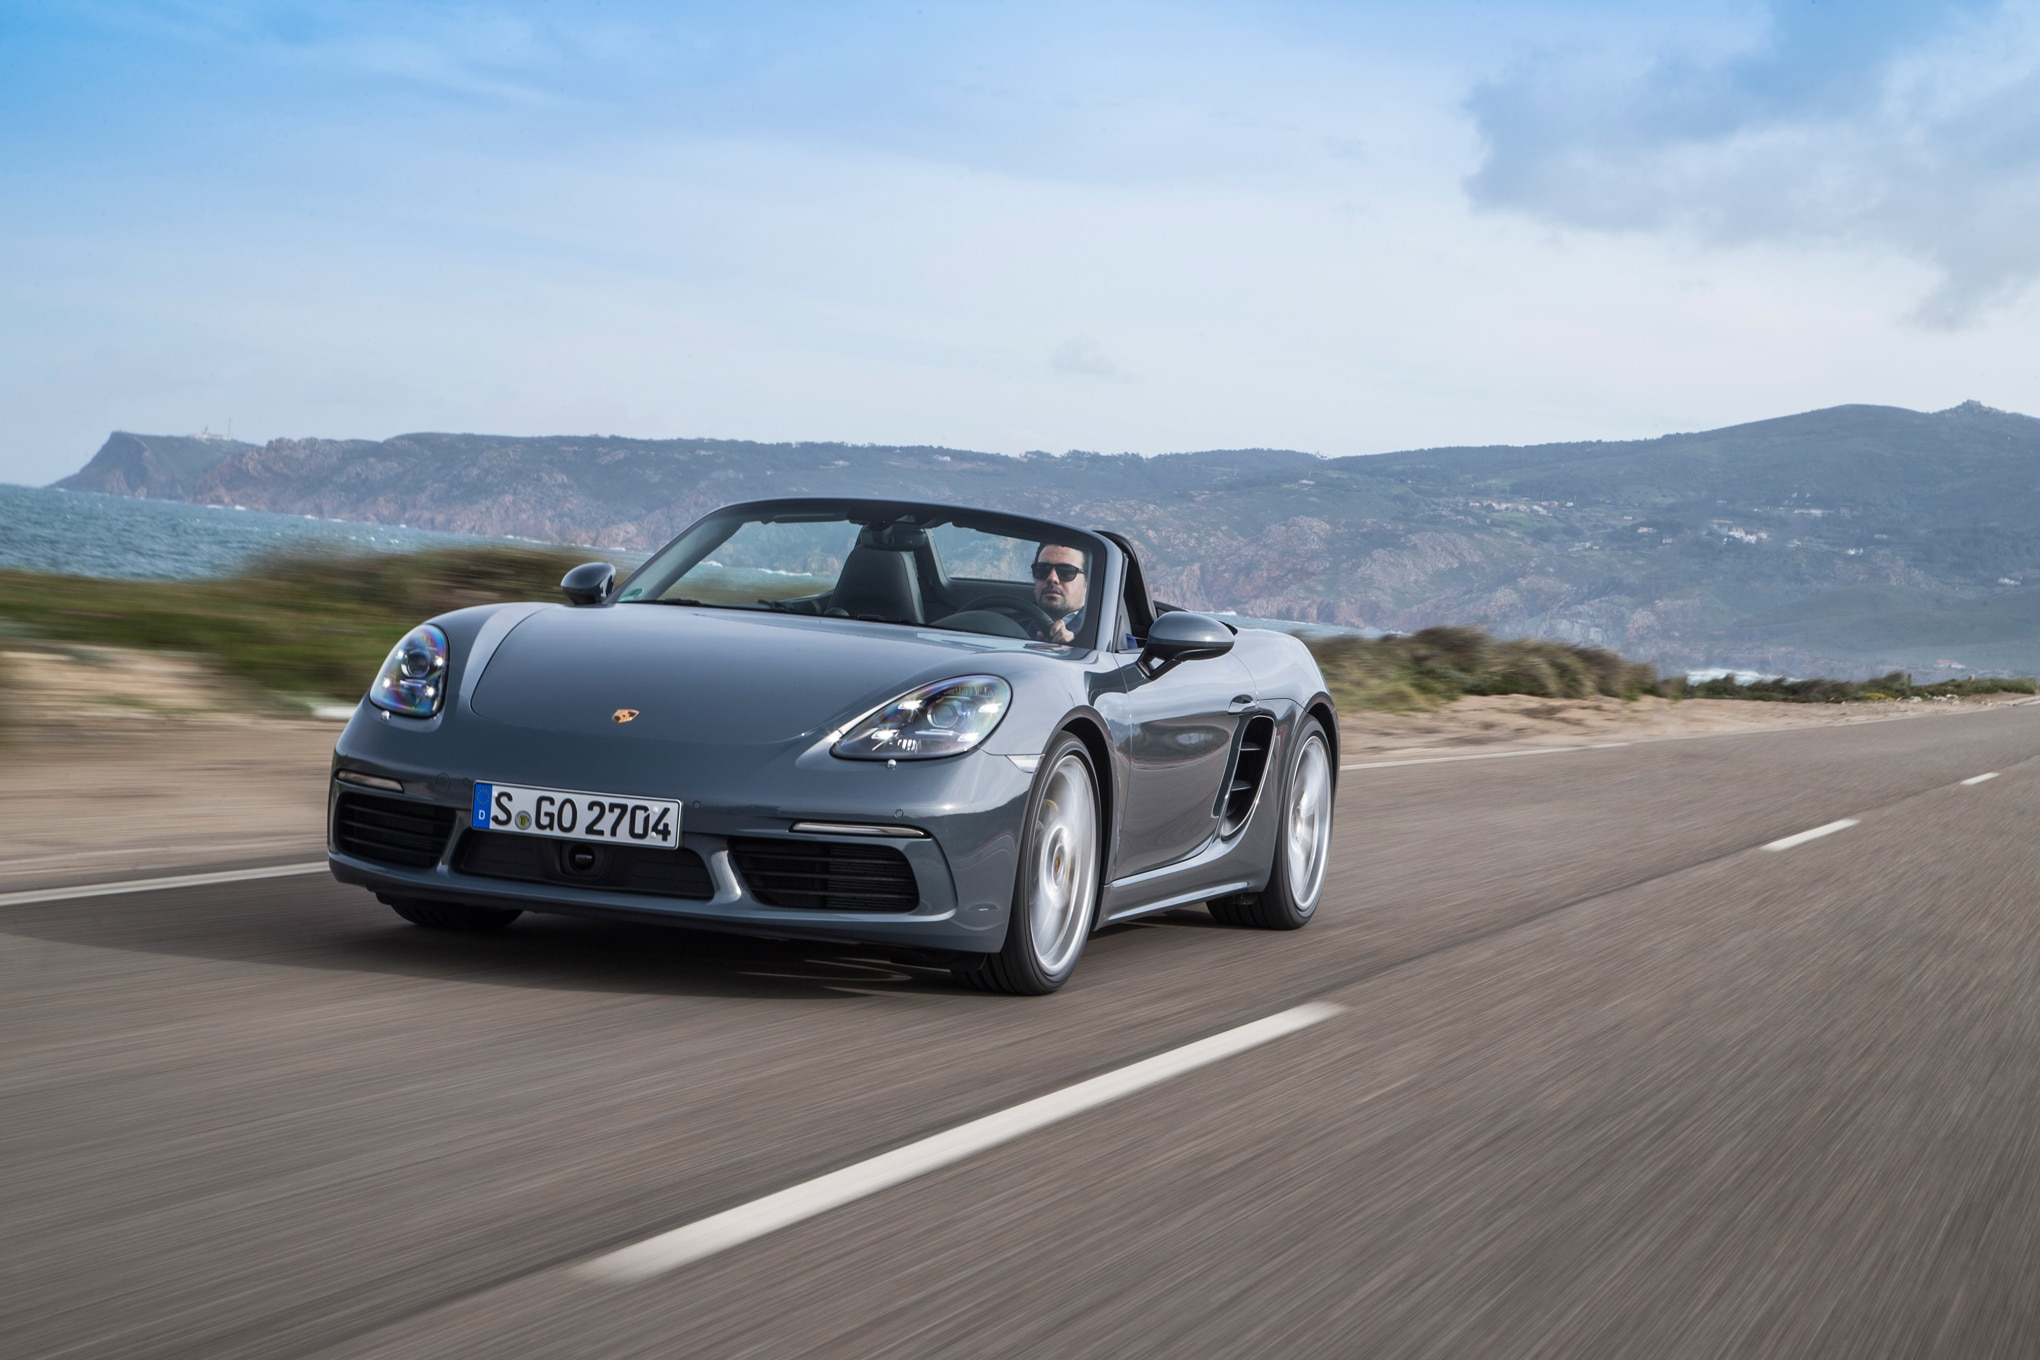 2017 Porsche 718 Boxster Front Three Quarter In Motion 02 1